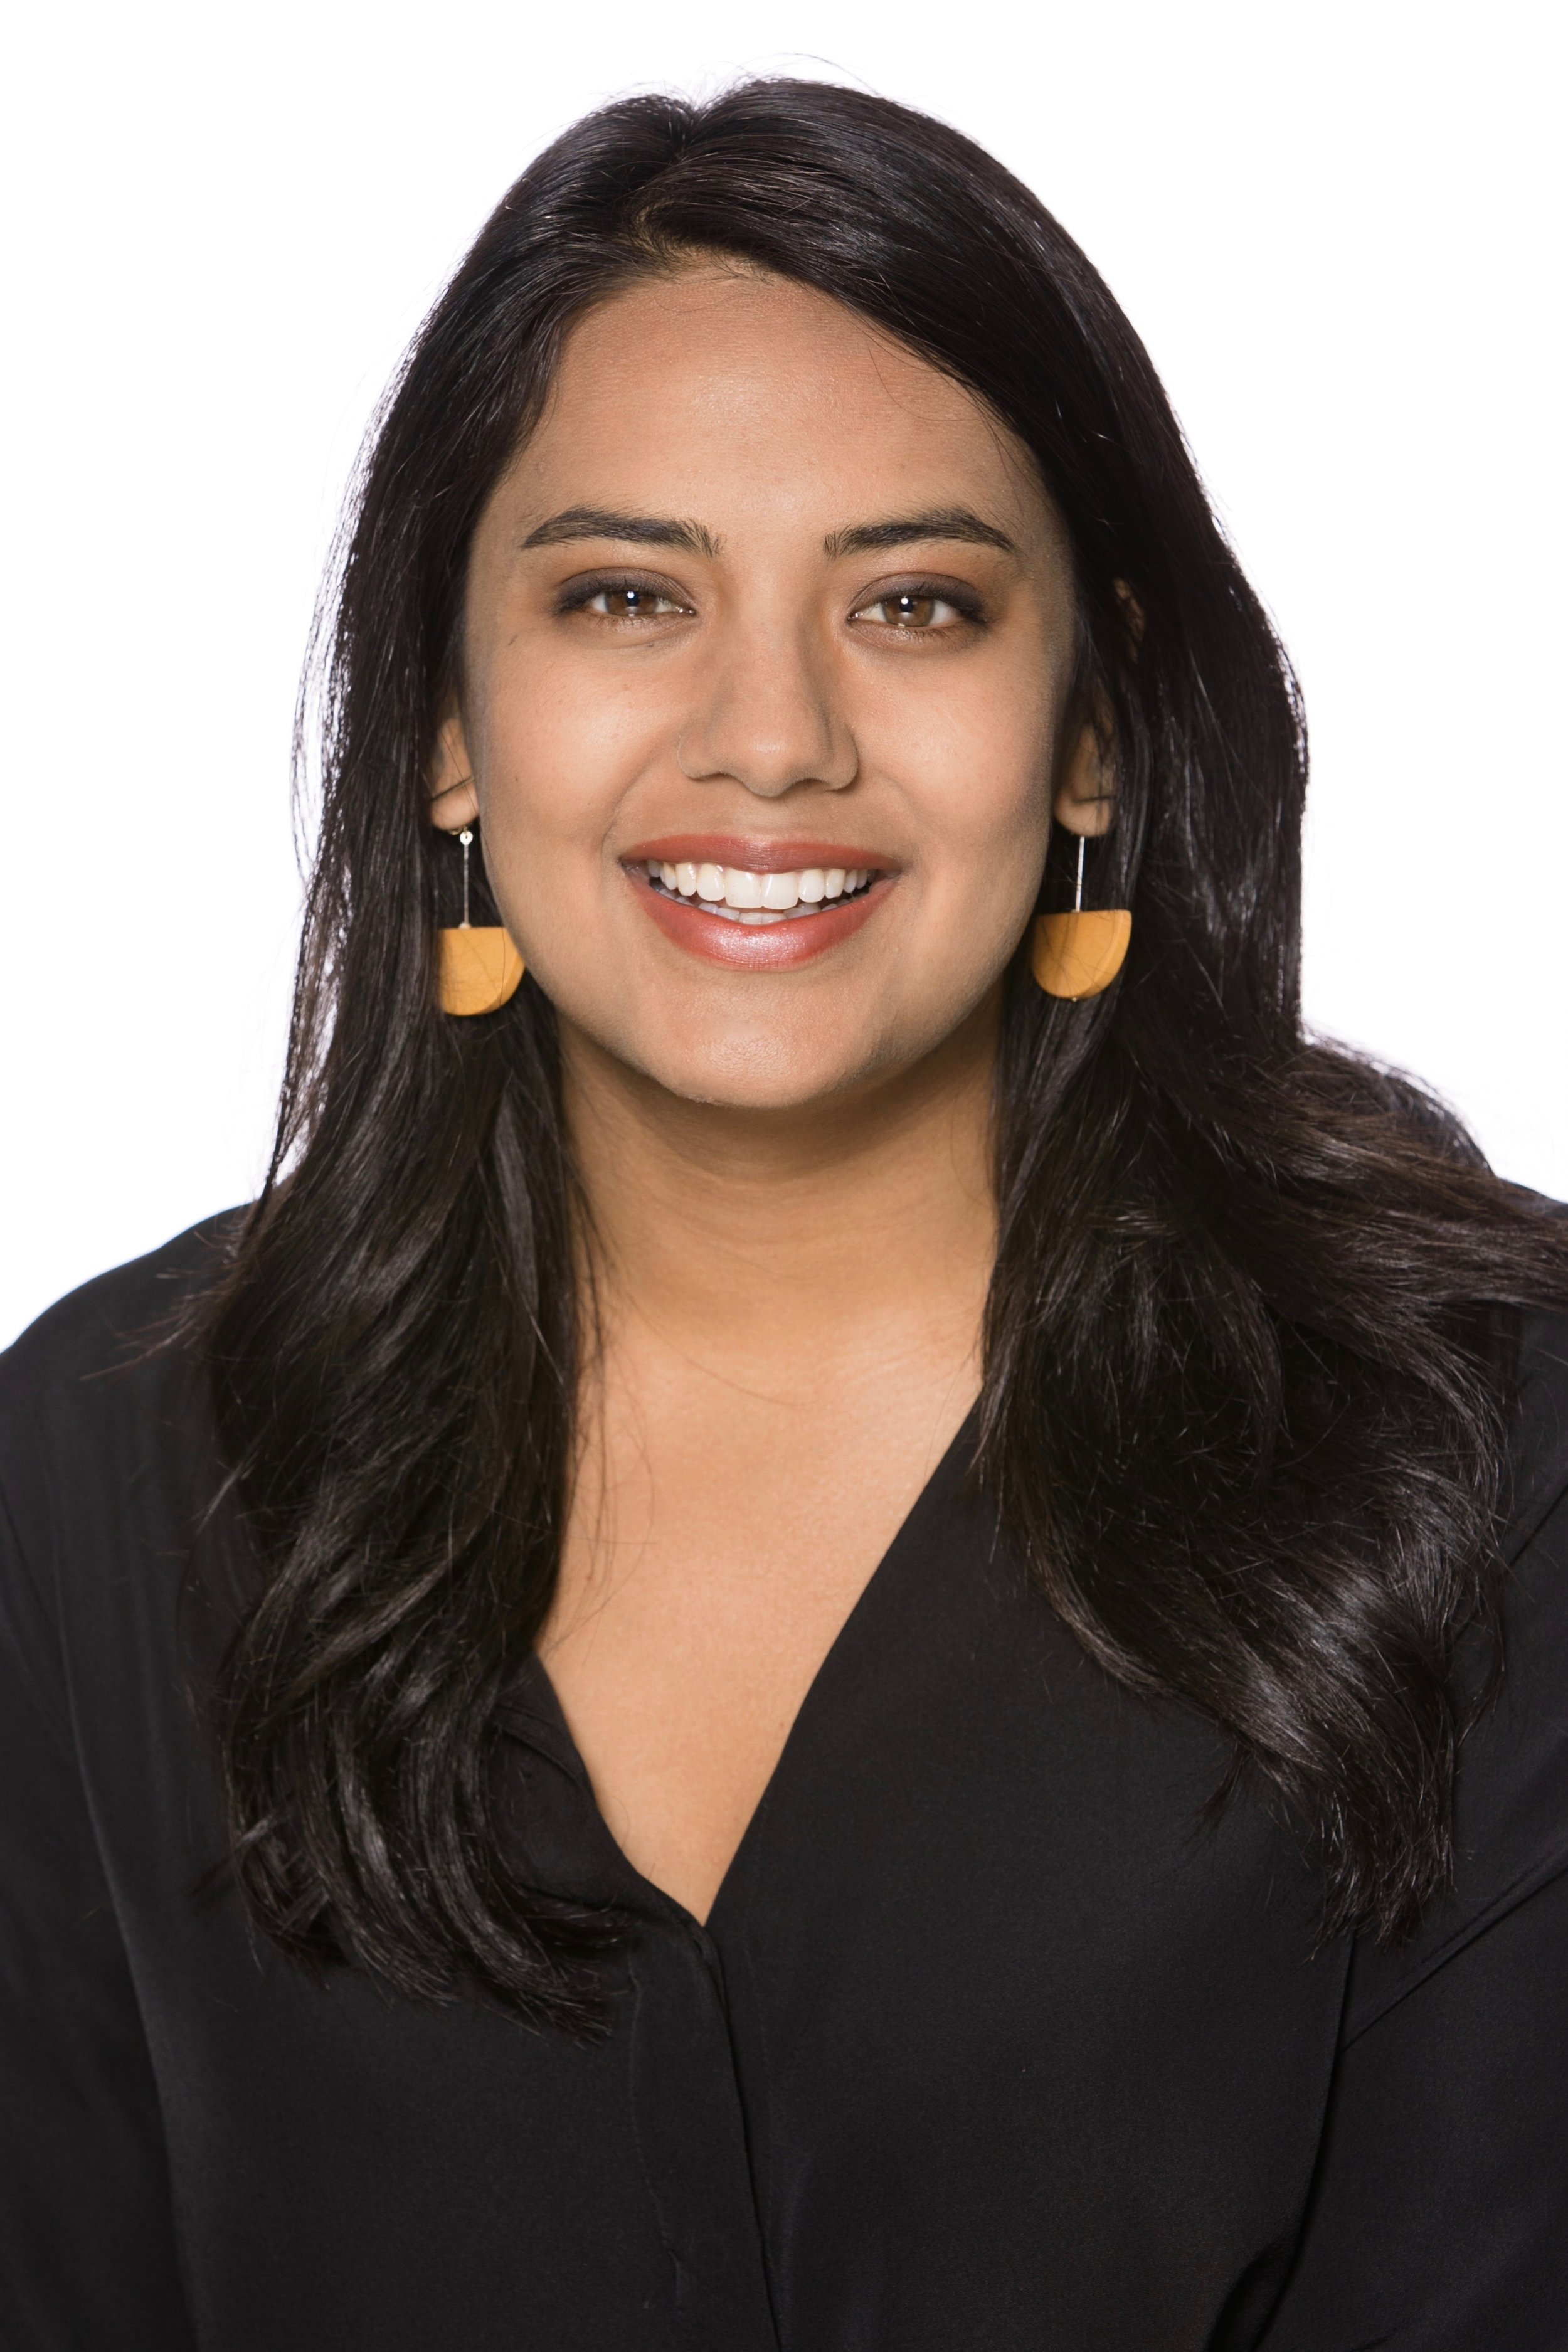 Hi, I'm Shilpi - I am working with core technology startups and studying systems engineering. I thrive on mission-driven teams that are tackling big messy problems.Currently, I work with early stage hardware companies working to bring technology into industrial environments. Currently, I work with Instrumental, which provides AI-driven defect detection for manufacturing lines. Previously, I led product commercialization at Filament, a company working to bring a decentralized networking and economic stack to construction, mining, and agriculture assets.I also invest in early stage founders through Village Global.My technology background started in venture capital, as analyst at First Roundand investor with VTF Capital, part of the Downtown Project. I studied Neuroscience and Economics at Duke University.My budding interests include:open data projects, public service design, renewable infrastructure and financing, decentralized systems theory, and basic income/asset models.Organizations I follow:Institute of the Future,Urban.Us,IDEO CoLab,Venture for America,Sidewalk Labs,Digital Currency Group, and Crisis Text Line.